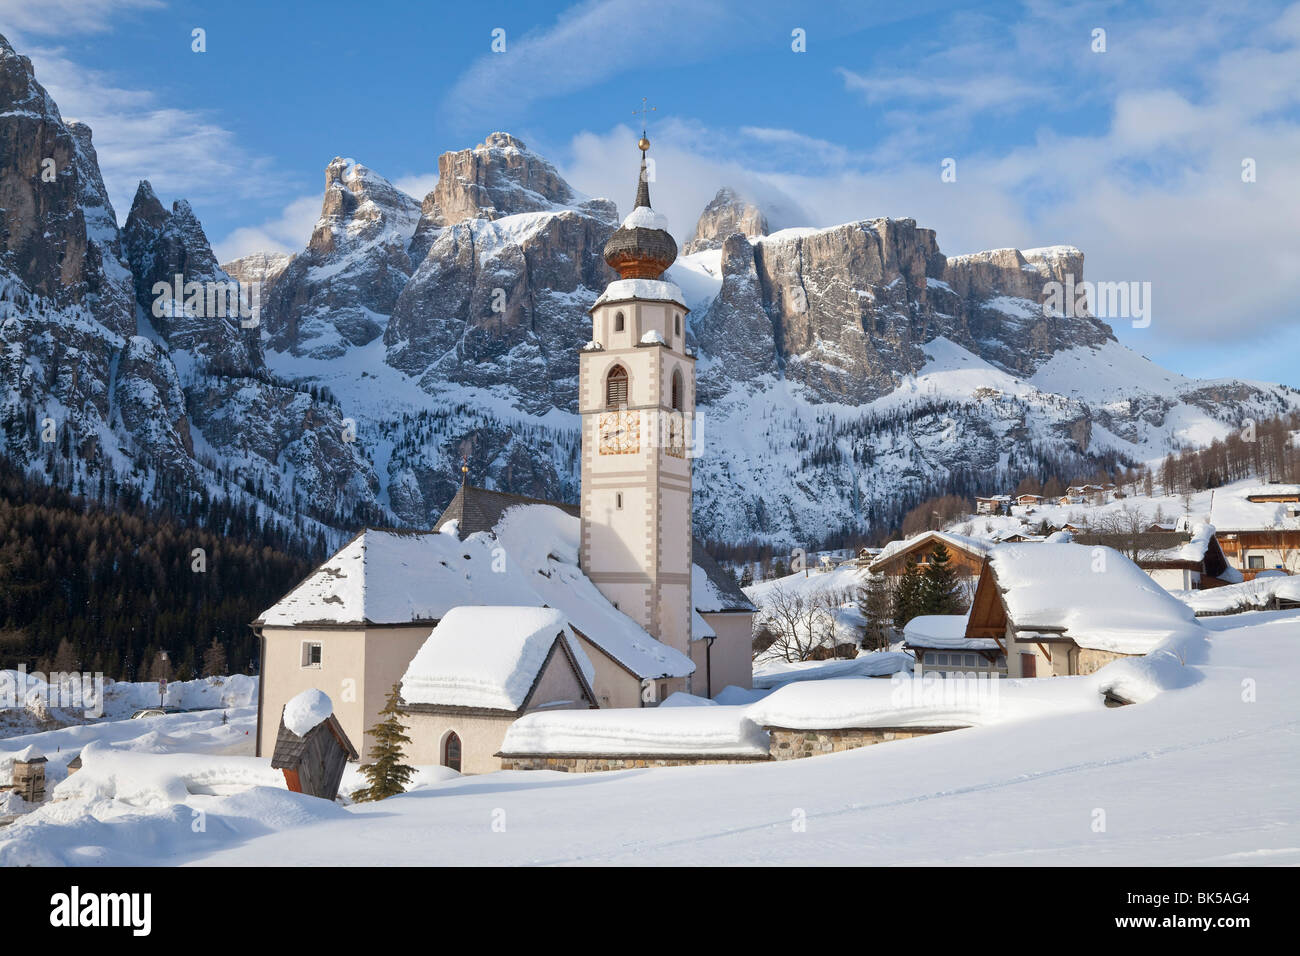 The church and village of Colfosco in Badia and Sella Massif range of mountains, South Tirol, Trentino-Alto Adige, - Stock Image